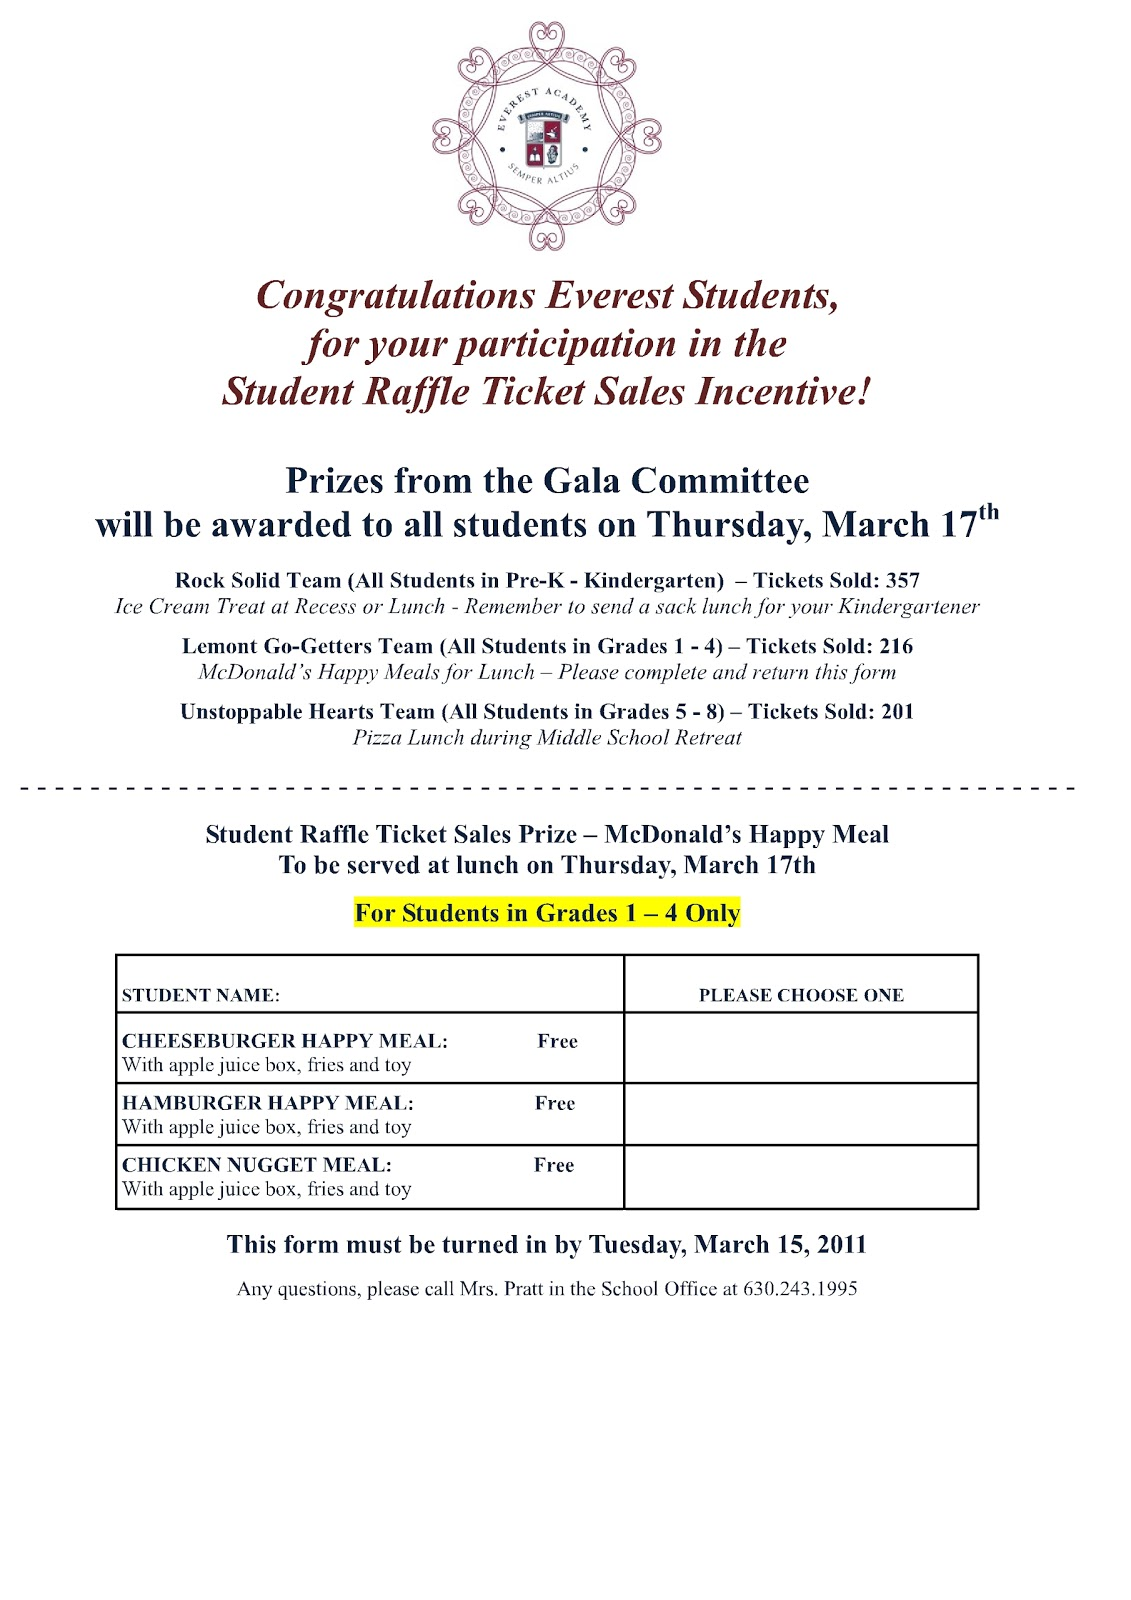 prizes for student raffle ticket sales